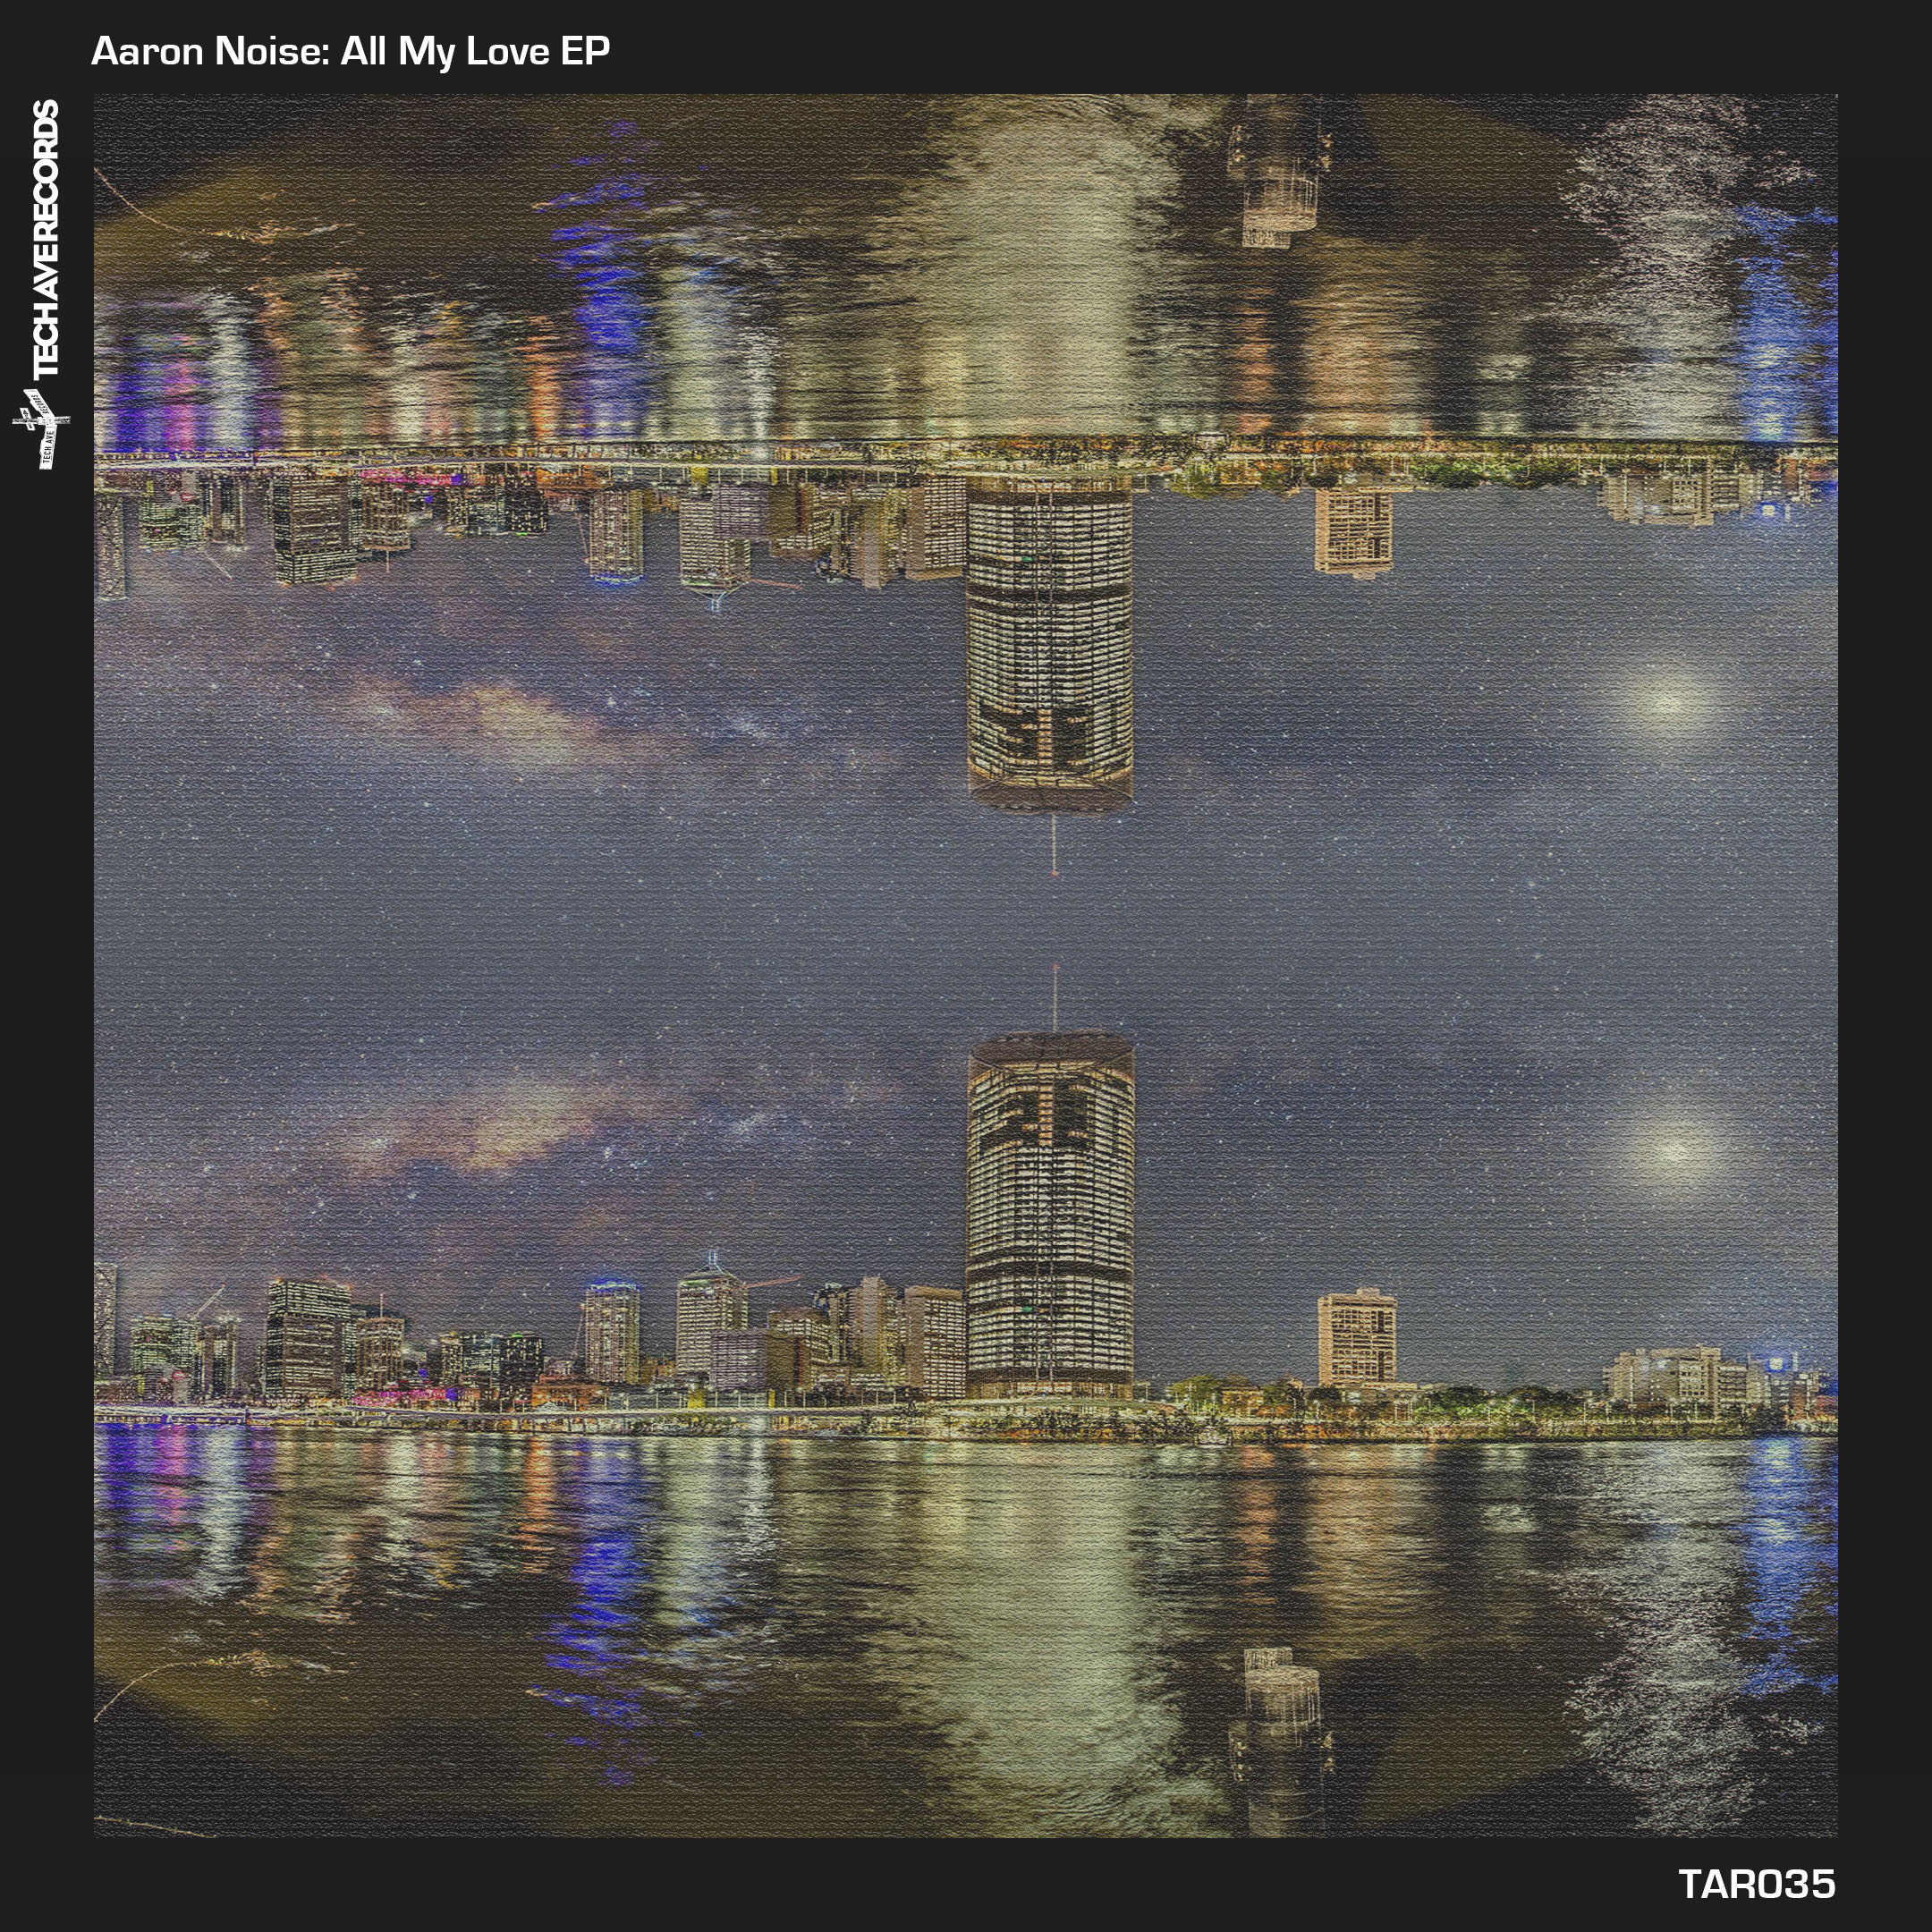 Aaron Noise: All My Love EP on Tech Avenue Records Image